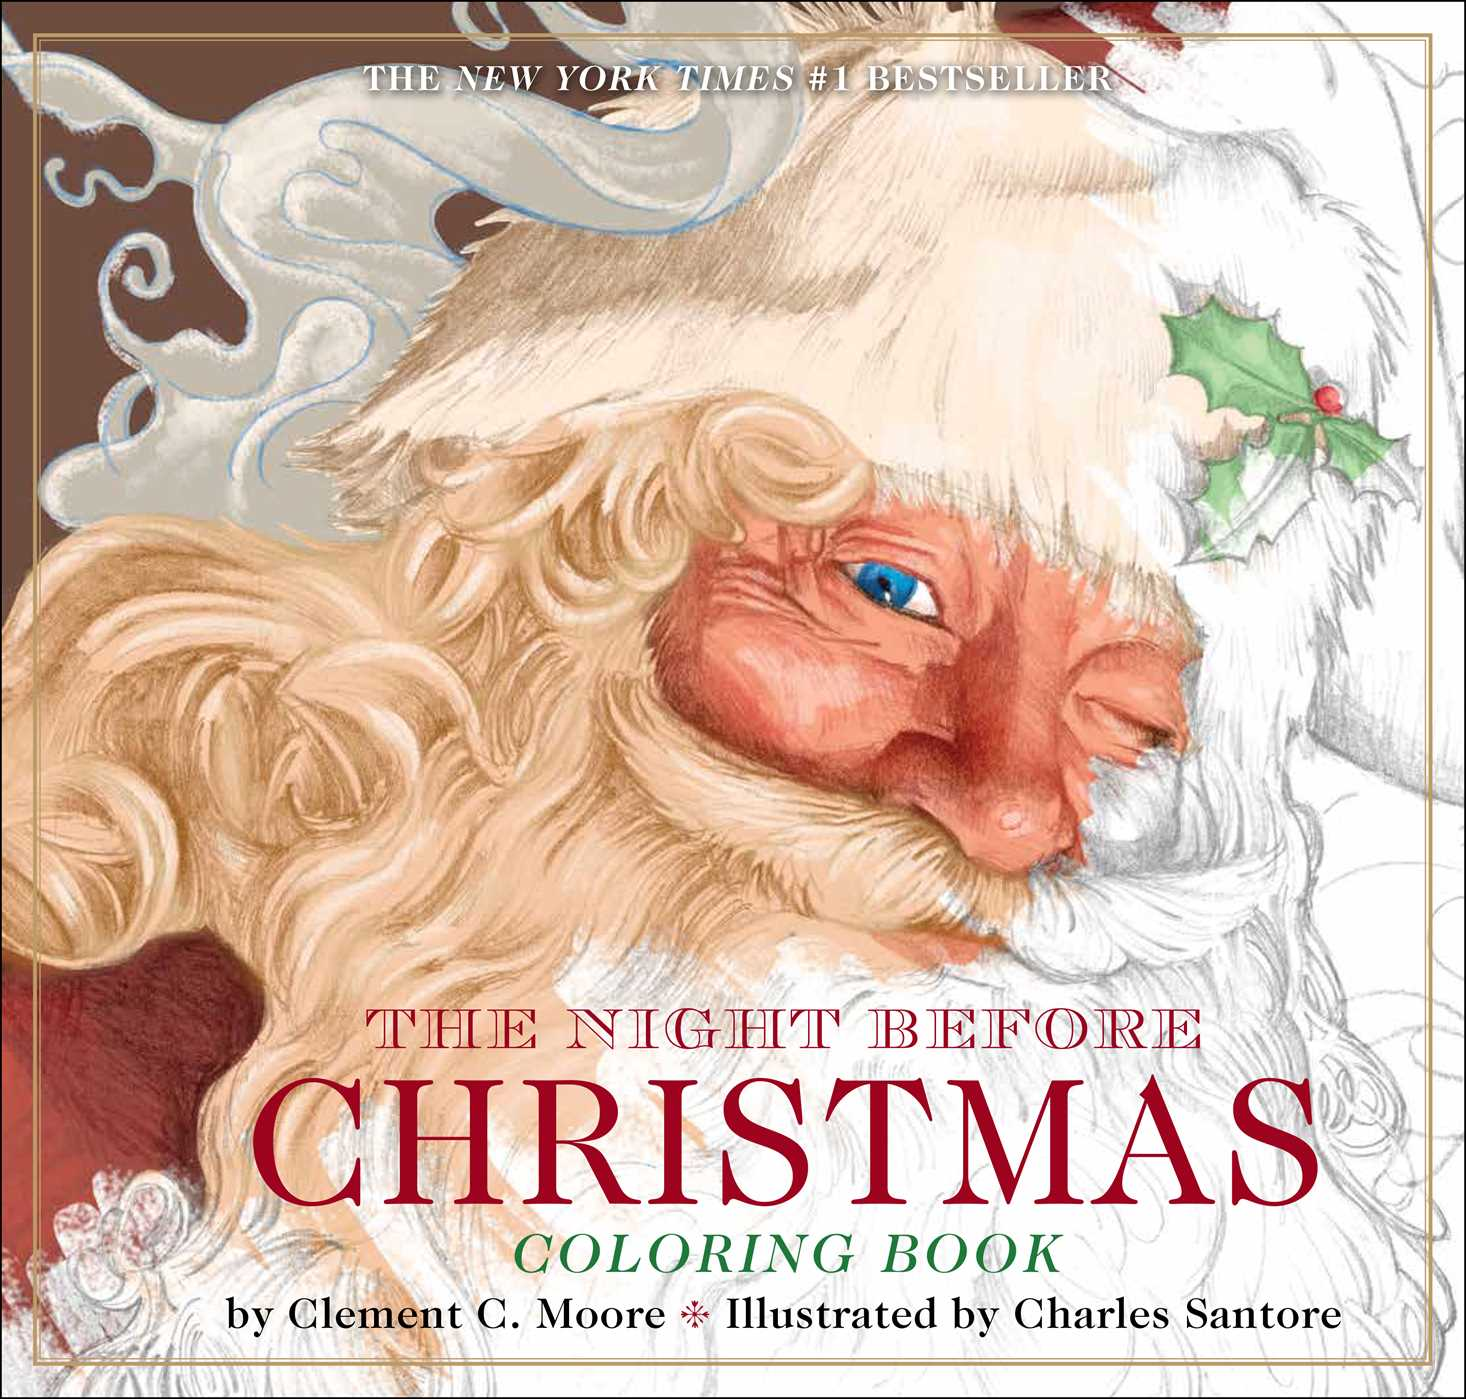 the night before christmas coloring book book by clement moore charles santore official publisher page simon schuster the night before christmas coloring